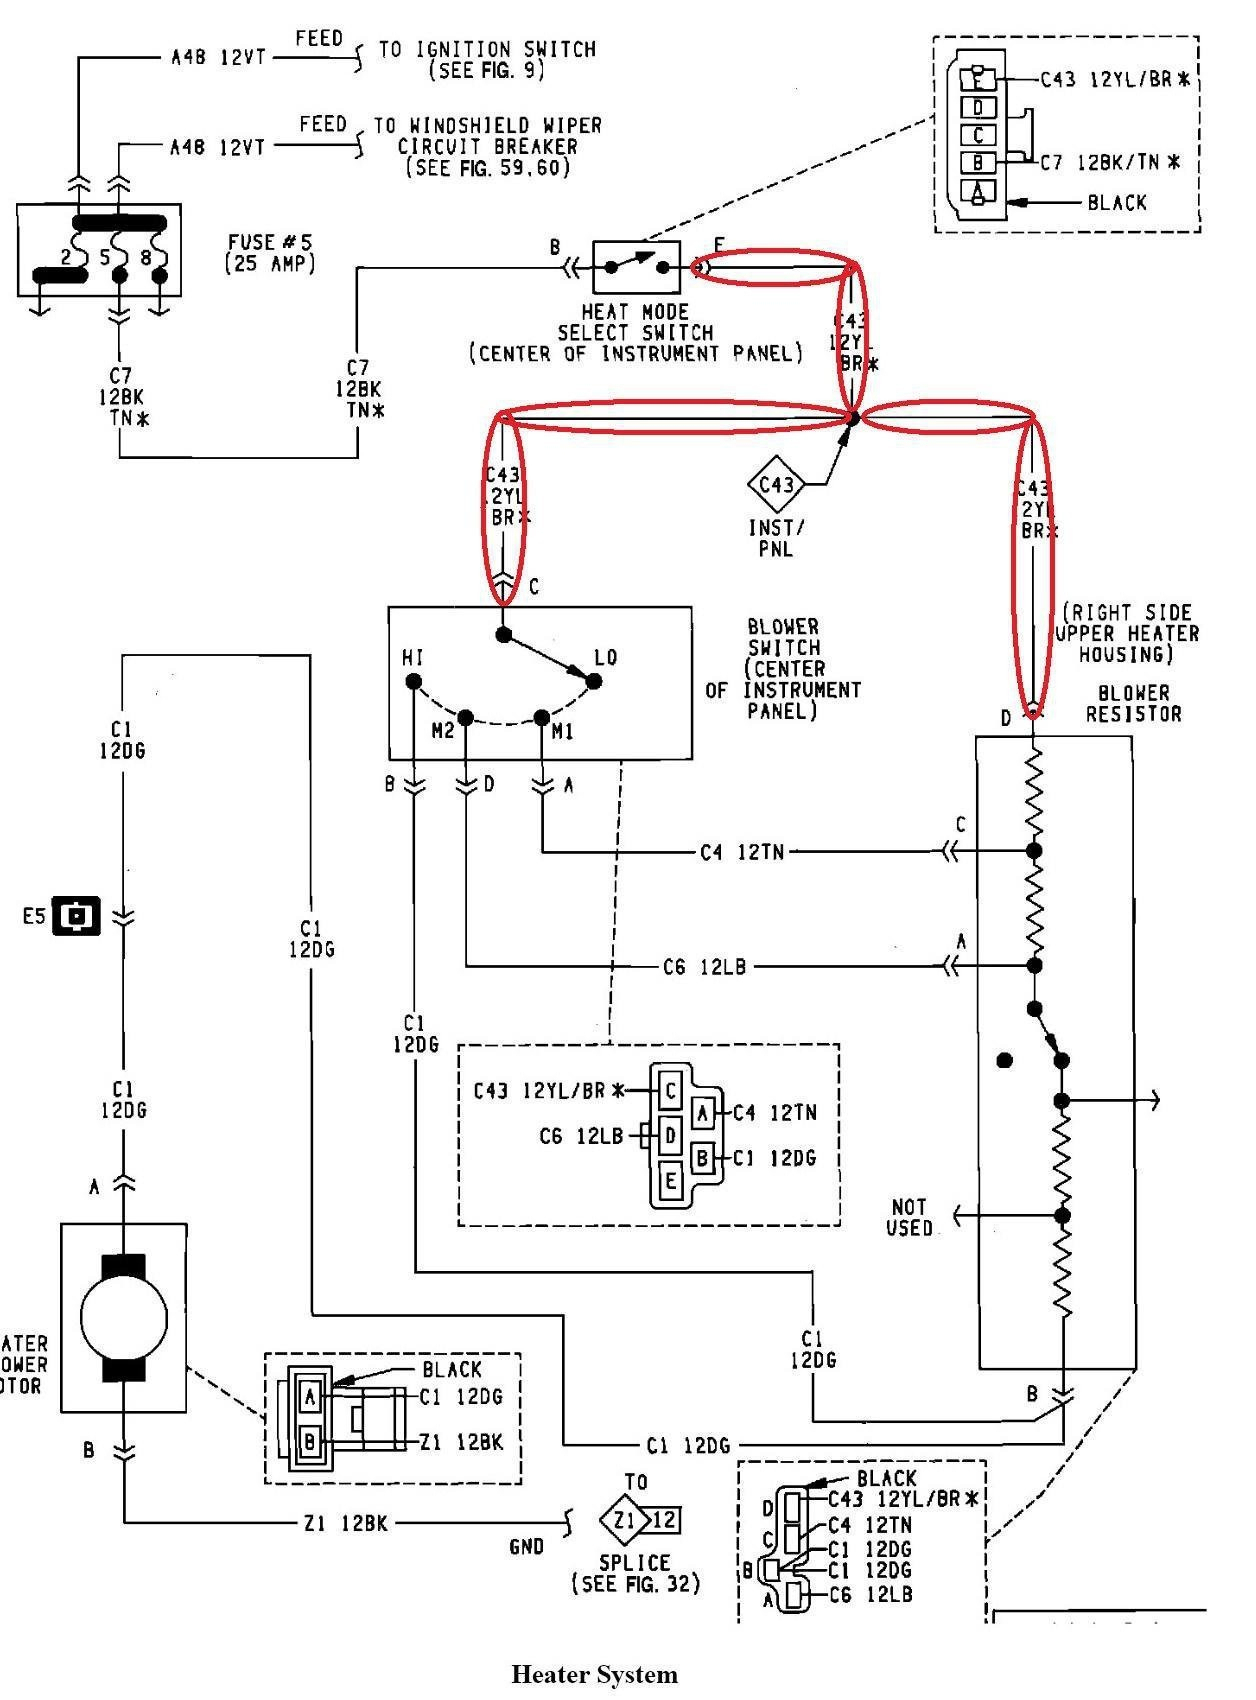 DIAGRAM] 48 Volt Ez Go Wiring Diagram FULL Version HD Quality Wiring Diagram  - STRUCTUREDWIREENCLOSURE.RAPFRANCE.FRstructuredwireenclosure.rapfrance.fr